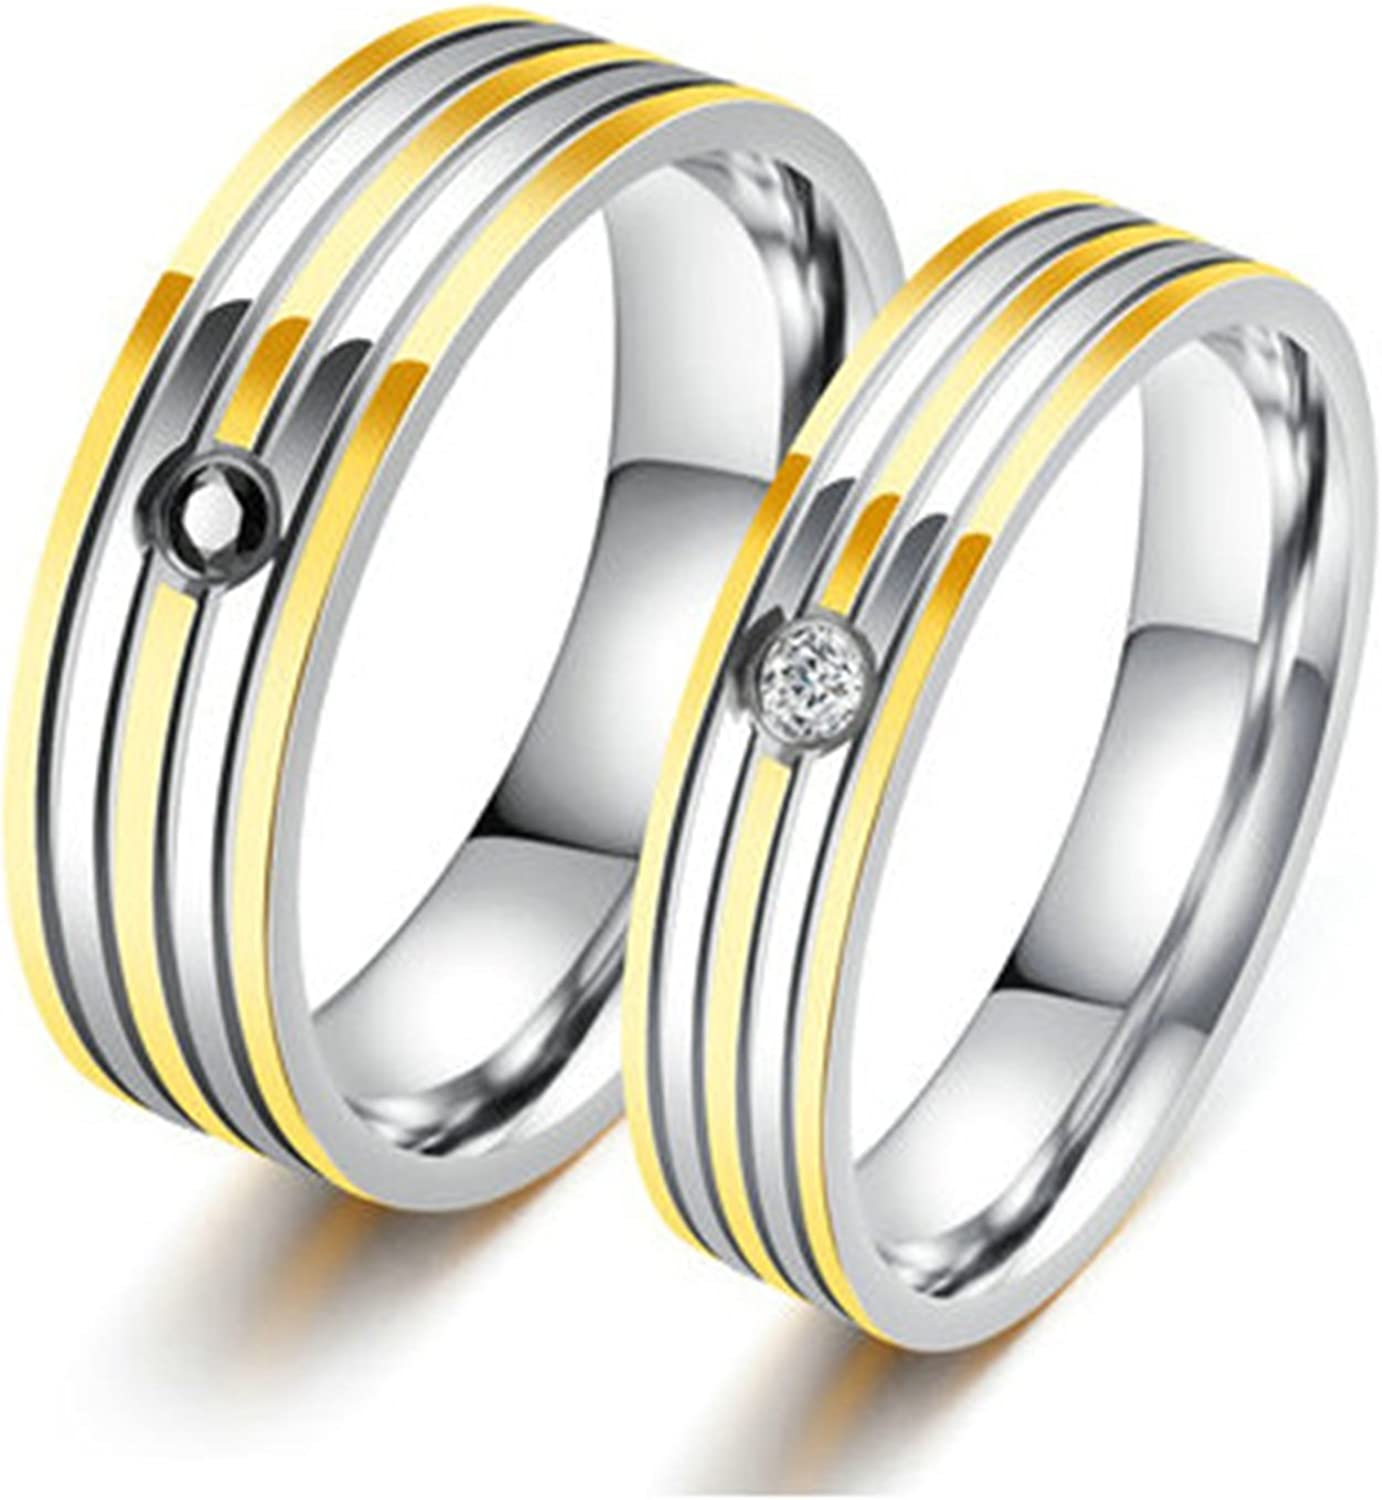 Bishilin Stainless Steel Cubic Zirconia His and Hers Matching Set Wedding Band Engagement Rings Women Size 7 /& Men Size 9